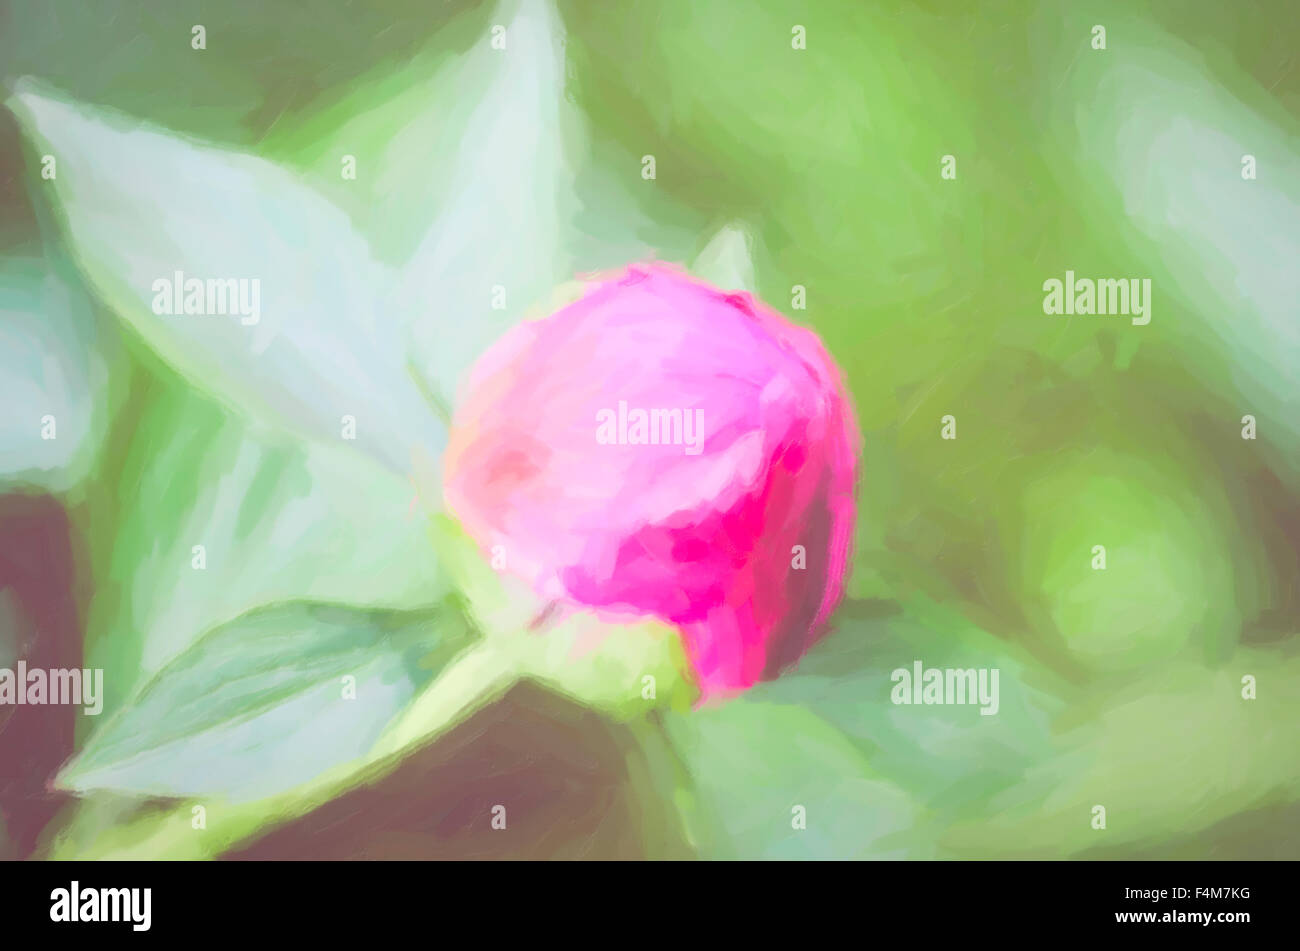 magenta peony bud and leaves close up - spring nature digital painting - Stock Image